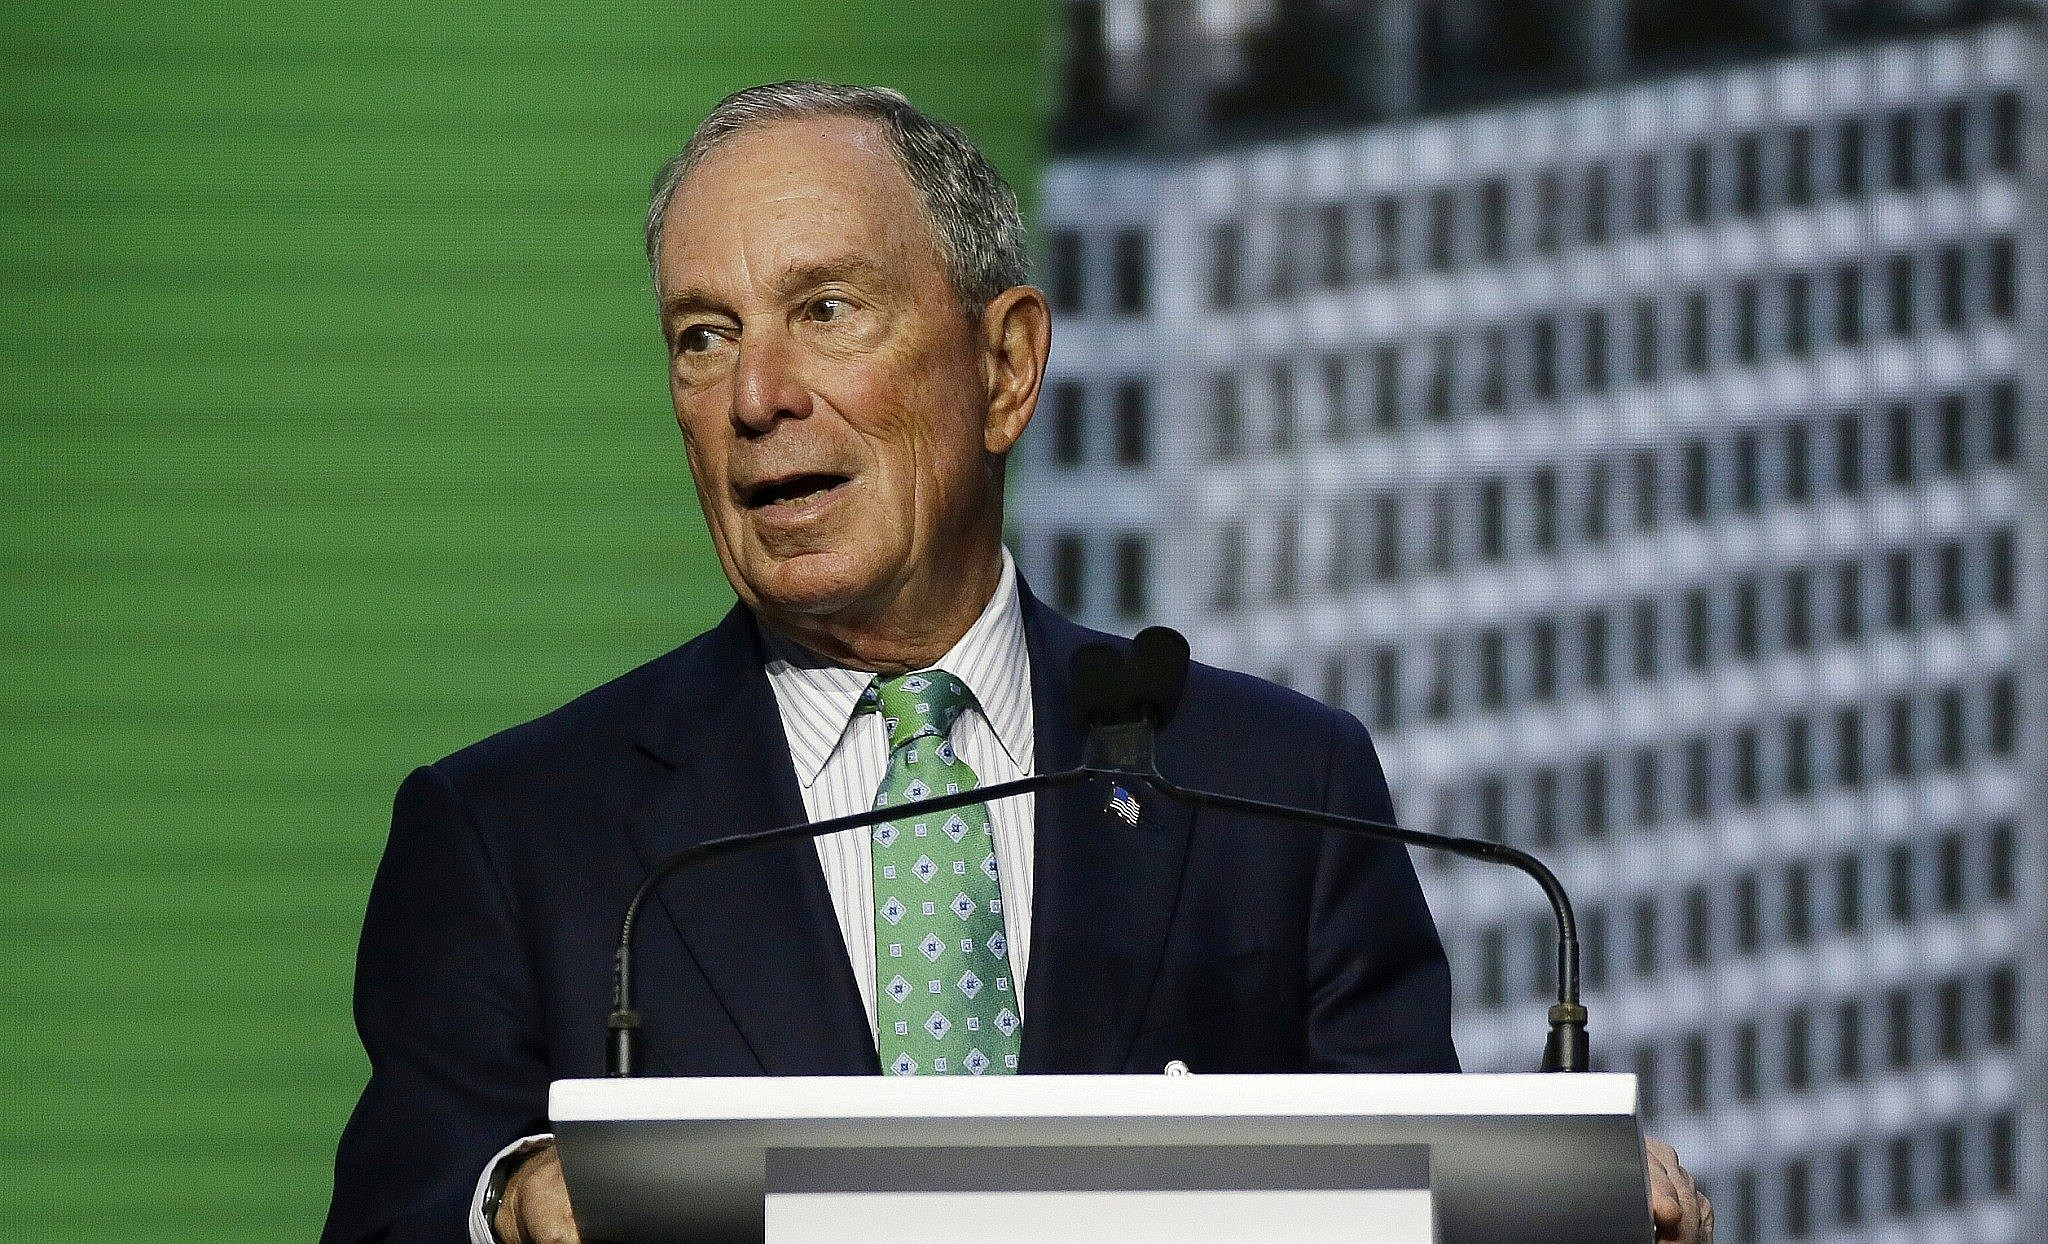 Michael Bloomberg changes party affiliation, re-registers as Democrat